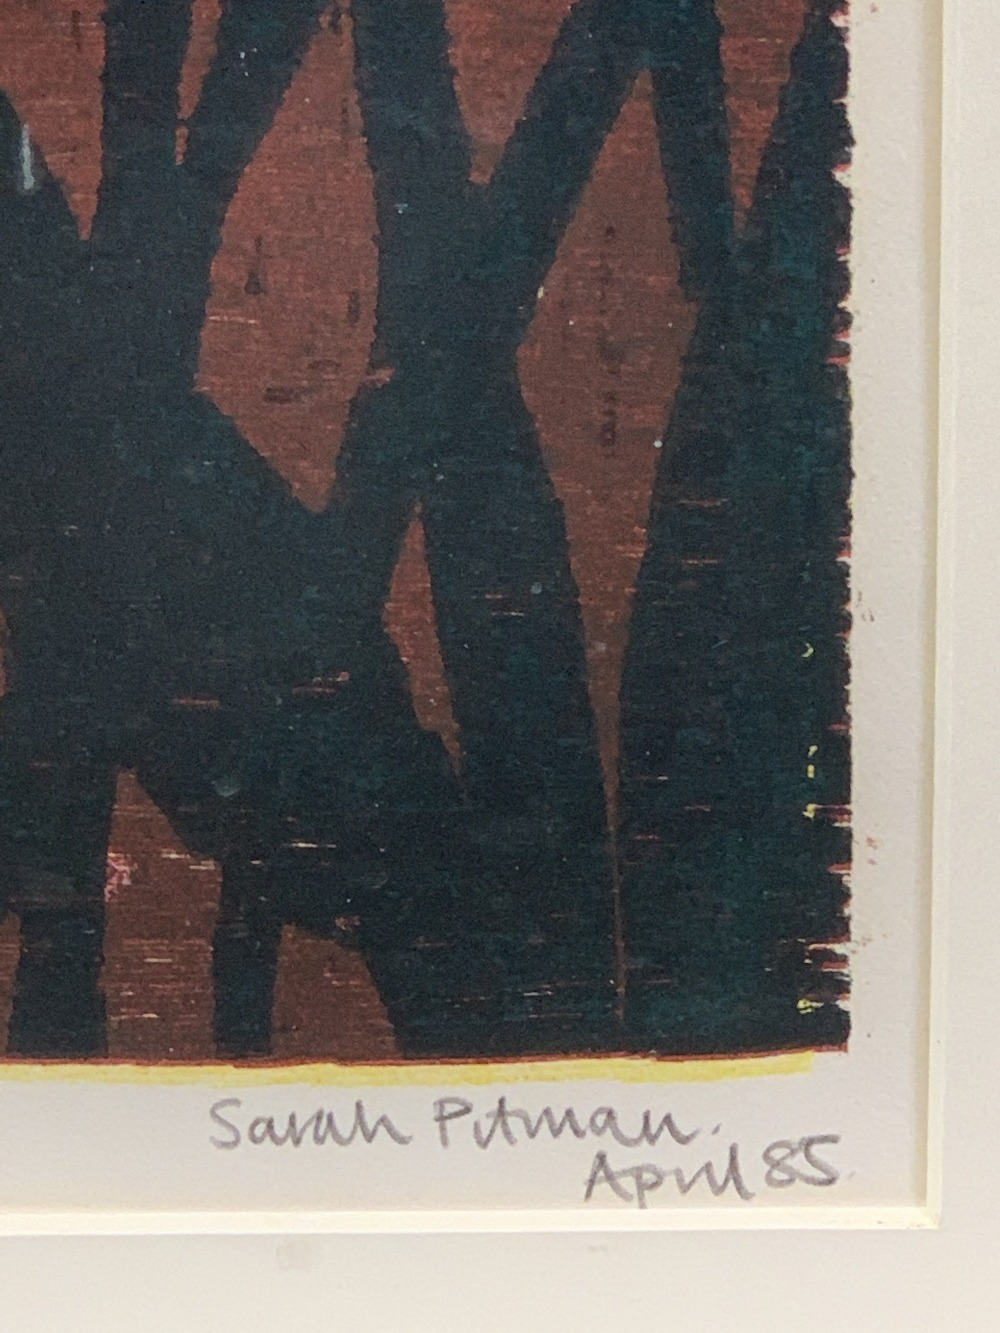 SARA PITMAN limited edition print - titled 'Asian Treasure' 2/6 signed and dated April '85, 55.5 x - Image 3 of 3